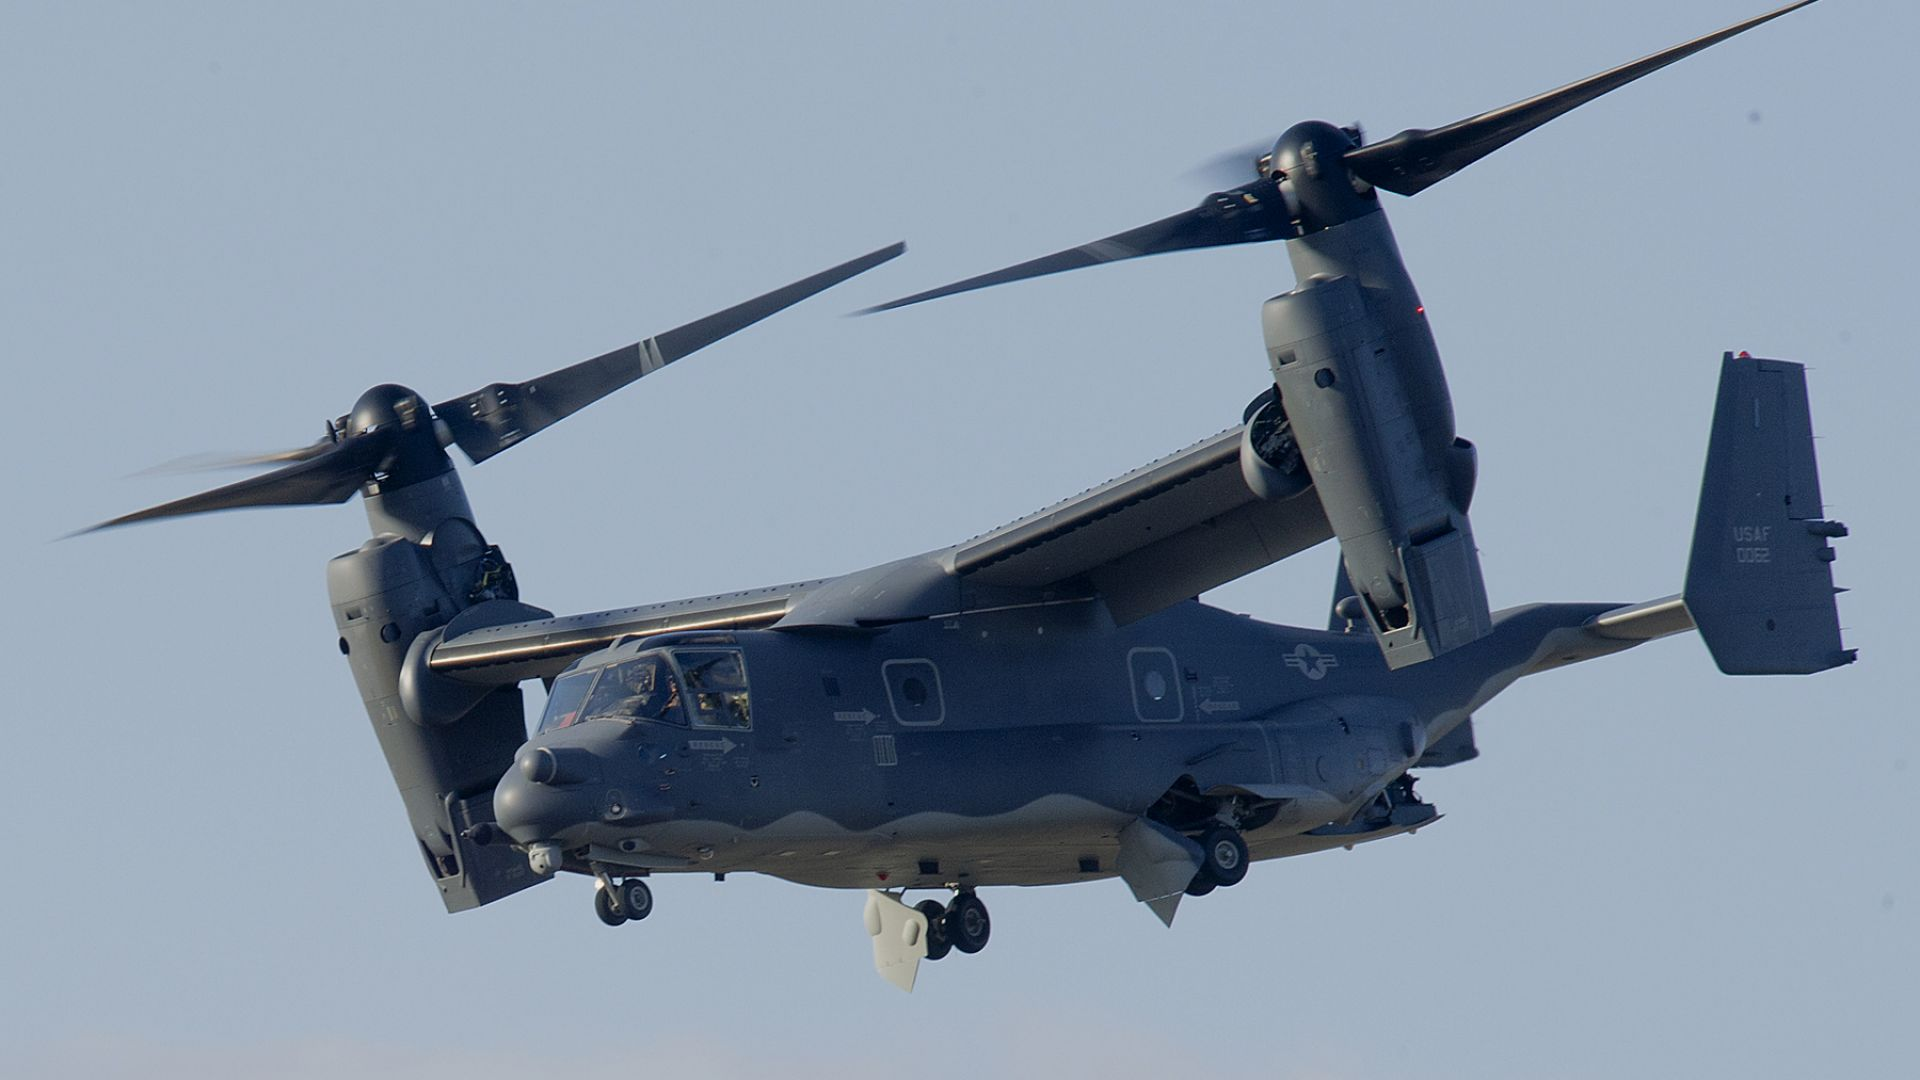 V-22 Osprey, tiltrotor, multi-mission aircraft, Bell, Boeing, US Army, U.S. Air Force (horizontal)